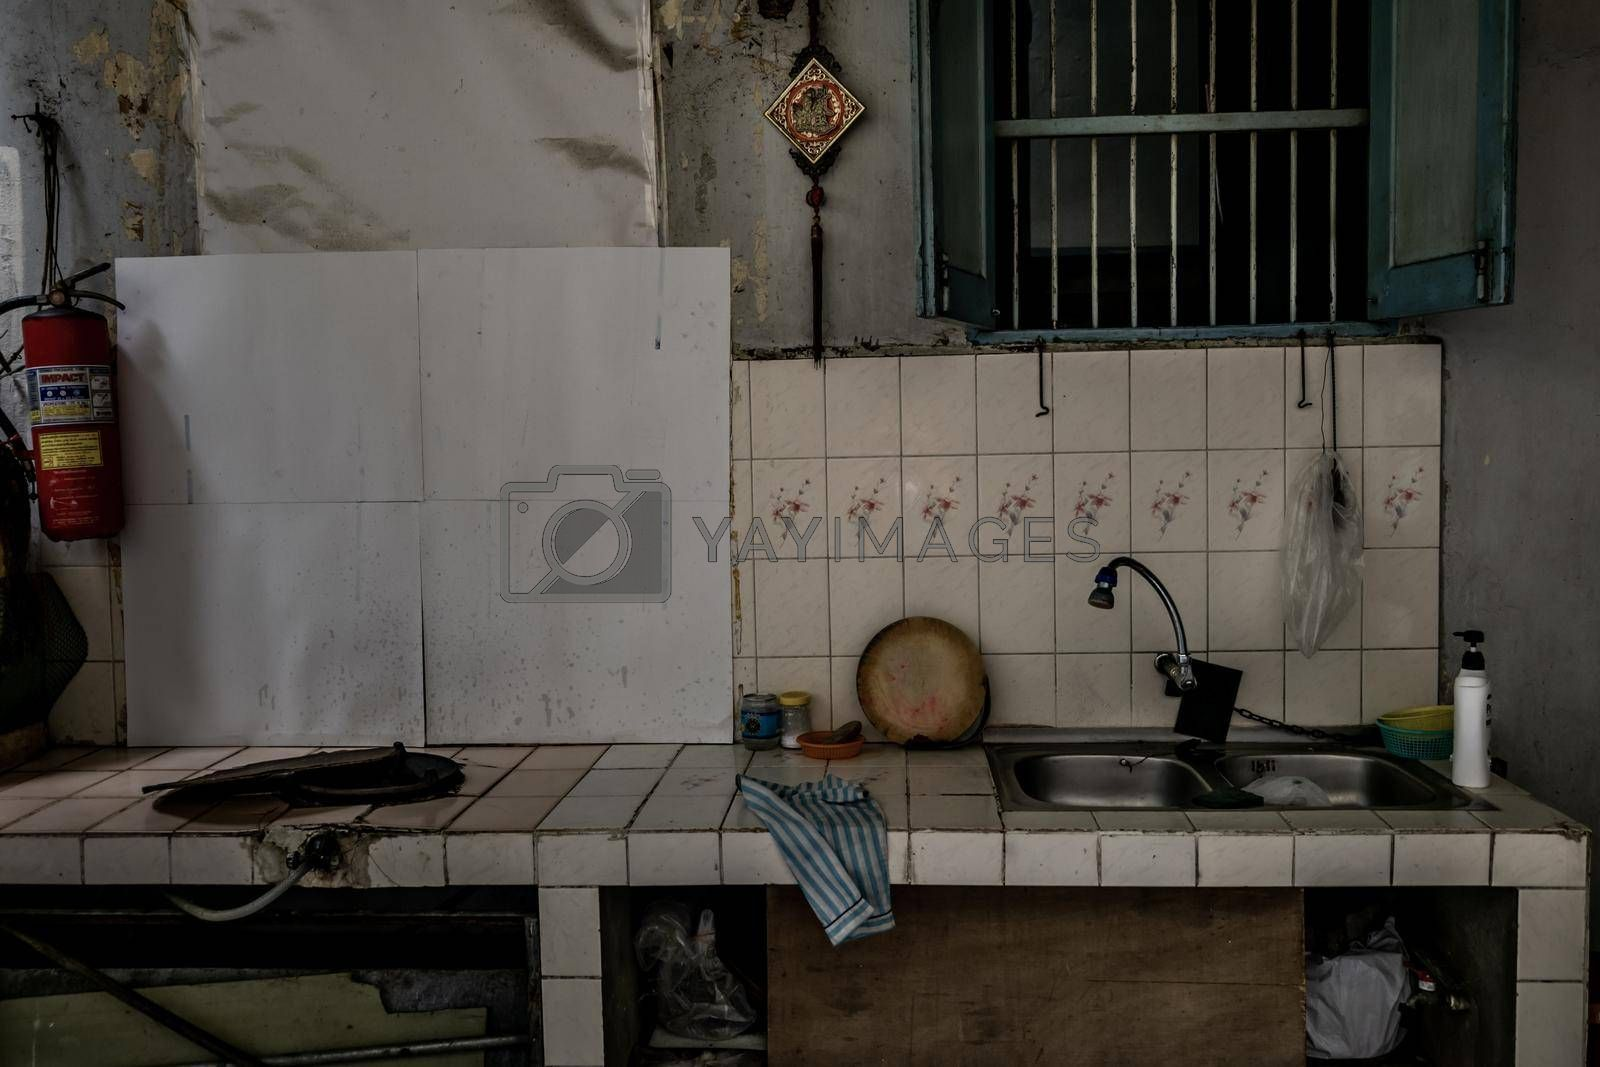 Bangkok, Thailand - Dec 7, 2019 : Ancient tiled countertops with gas stove and kitchen sink In front of the old house.